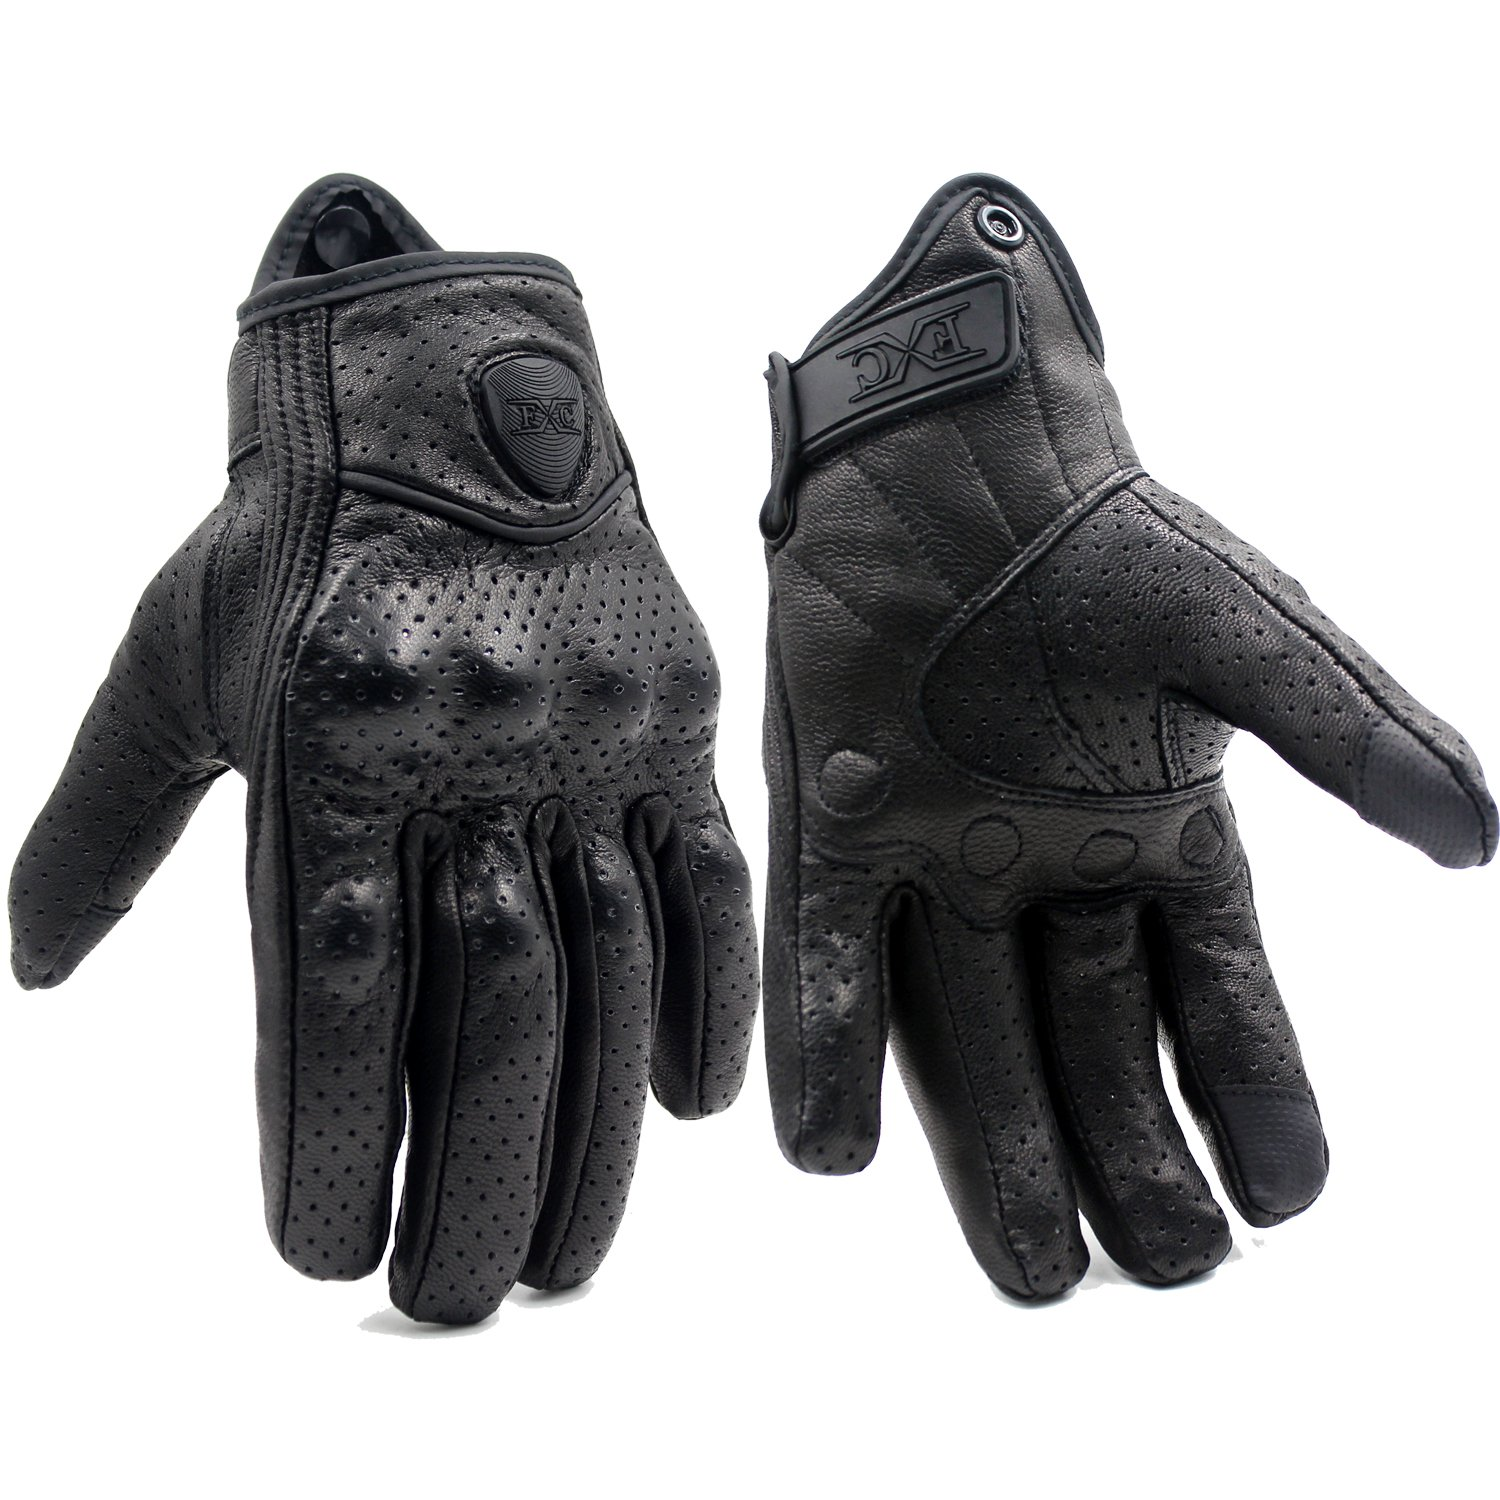 Buy leather motorcycle gloves - Fxc Full Finger Motorcycle Leather Gloves Men S Premium Protective Motorbike Gloves Xl Mesh